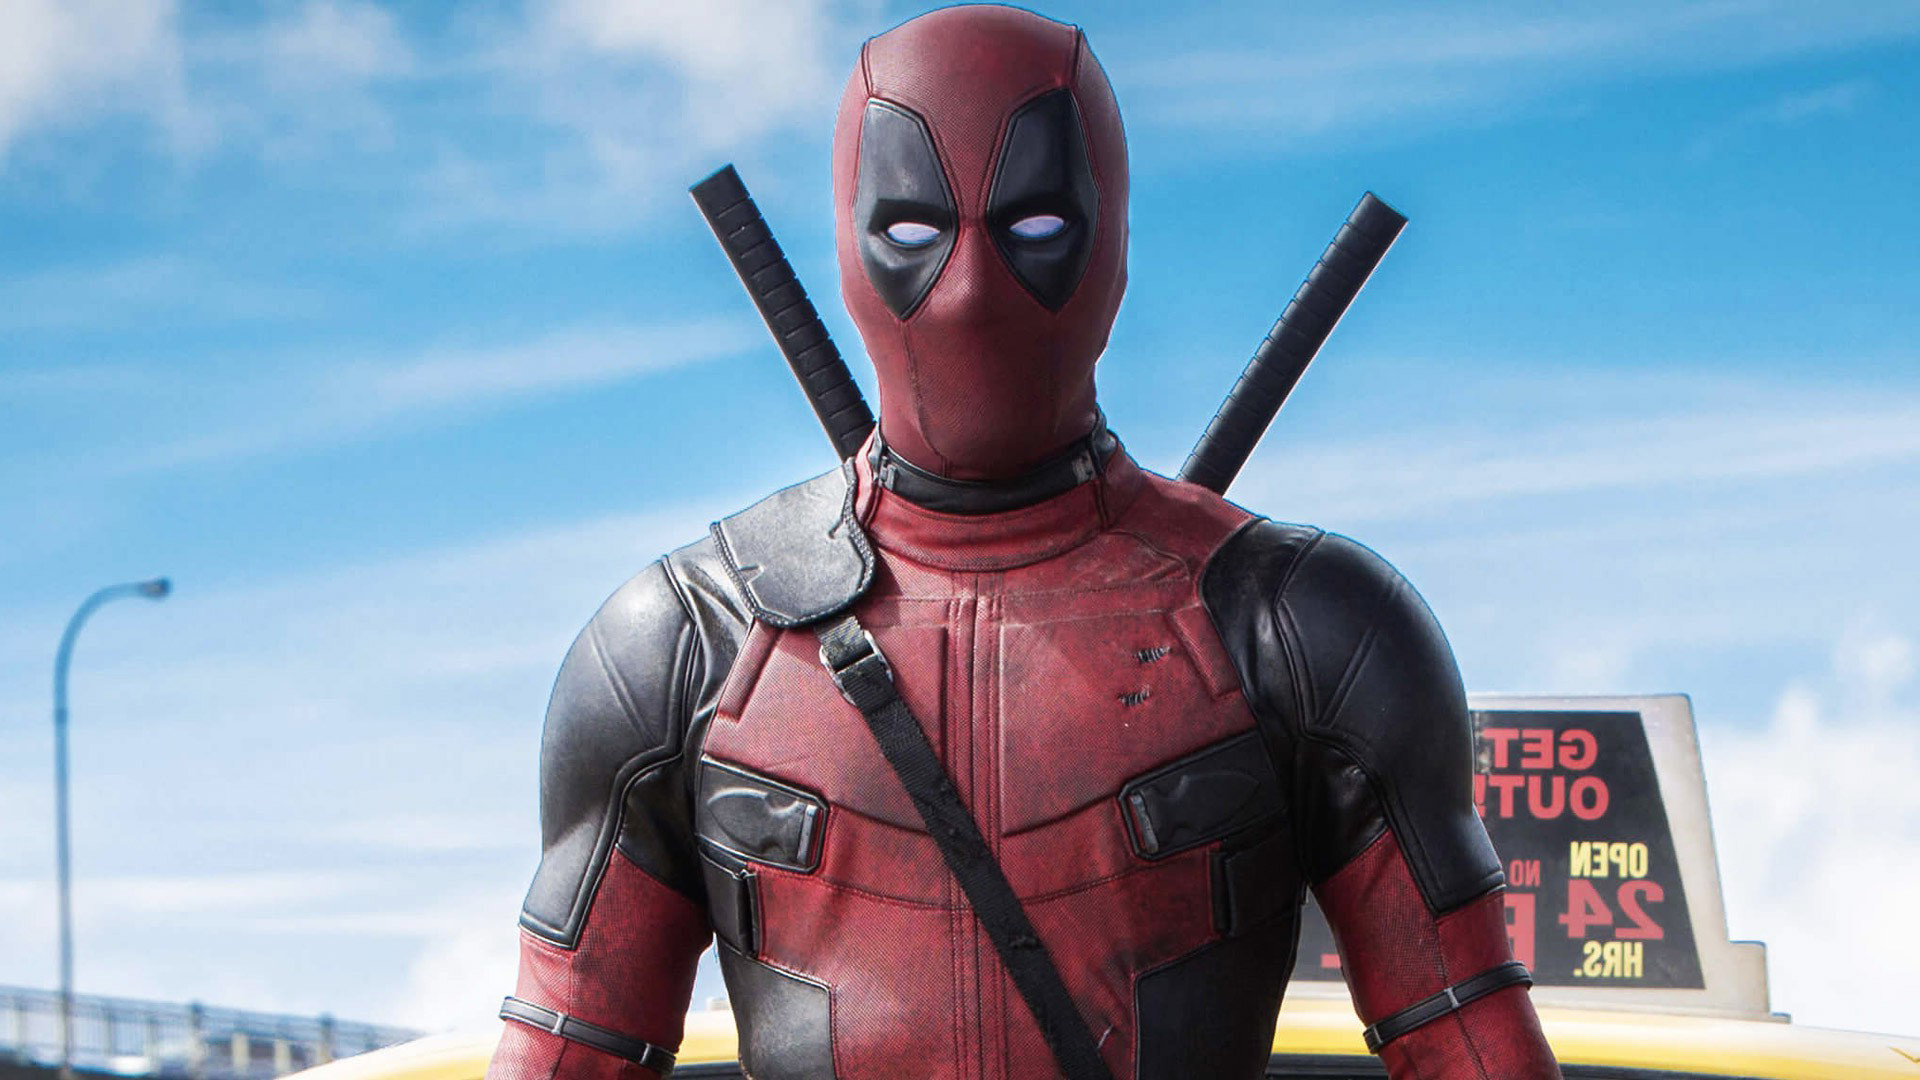 Res: 1920x1080, Deadpool movie 1080p wallpapers.